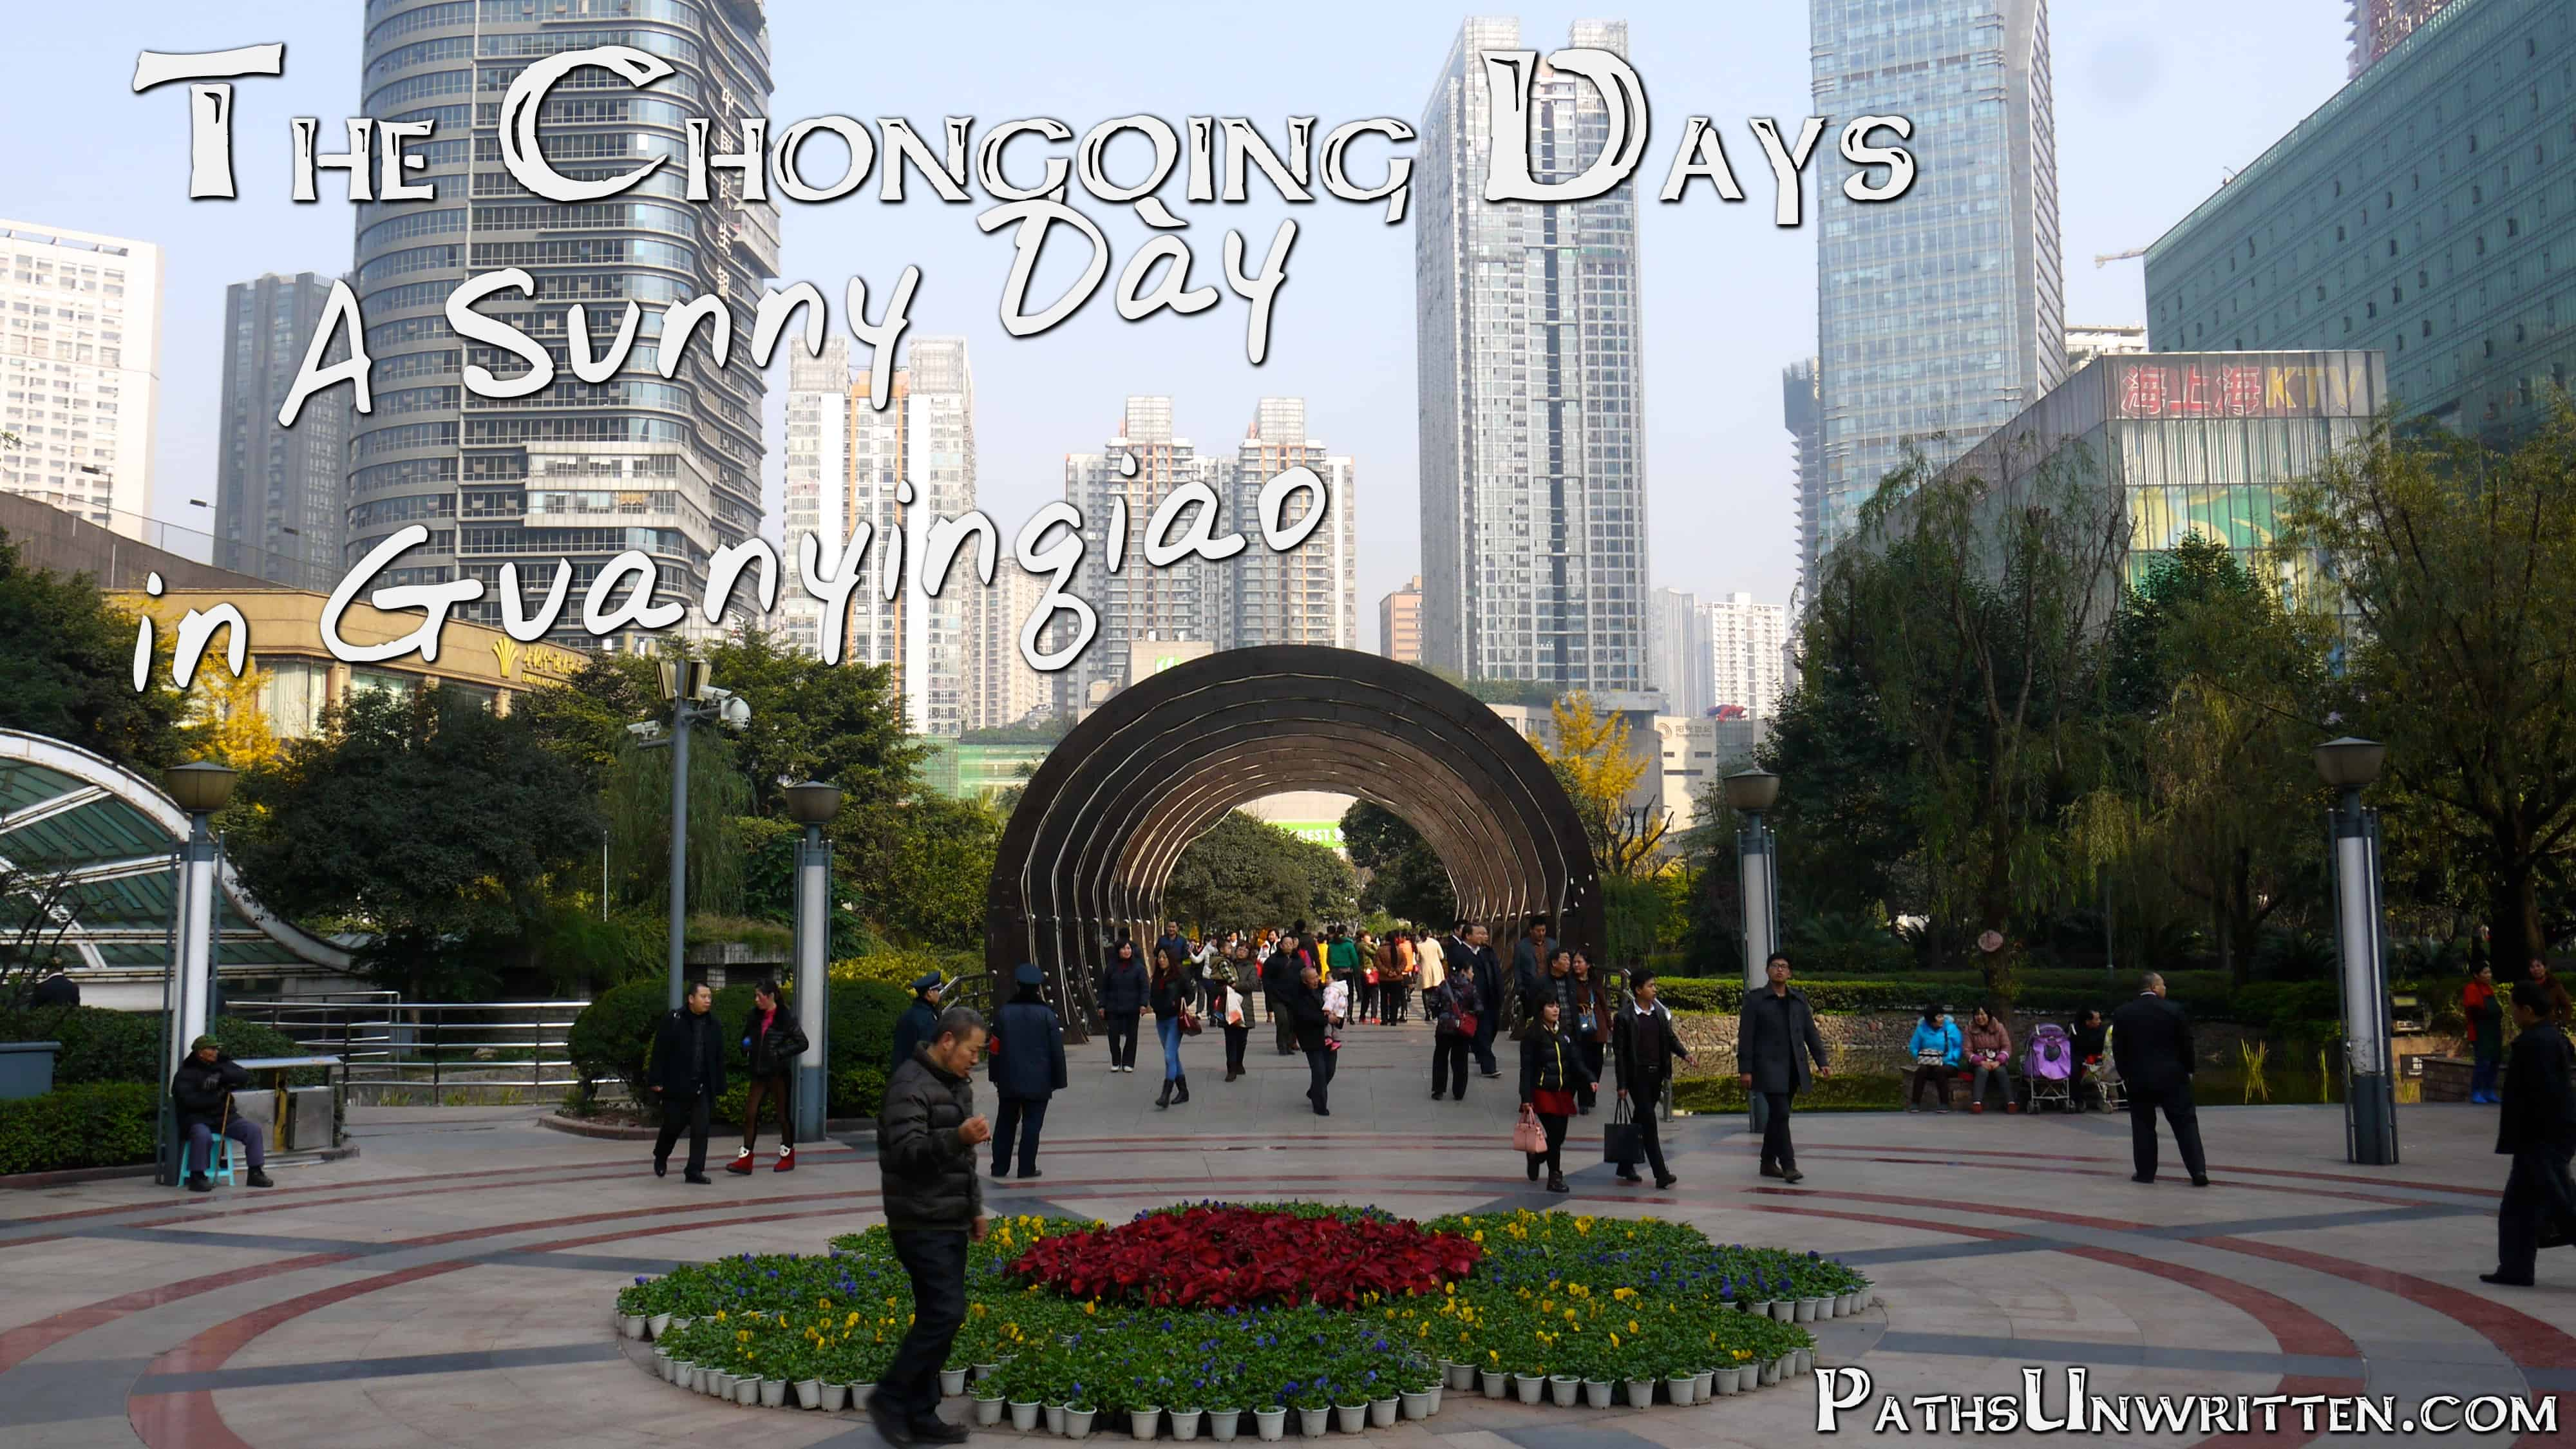 The Chongqing Days:  A Sunny Day in Guanyinqiao